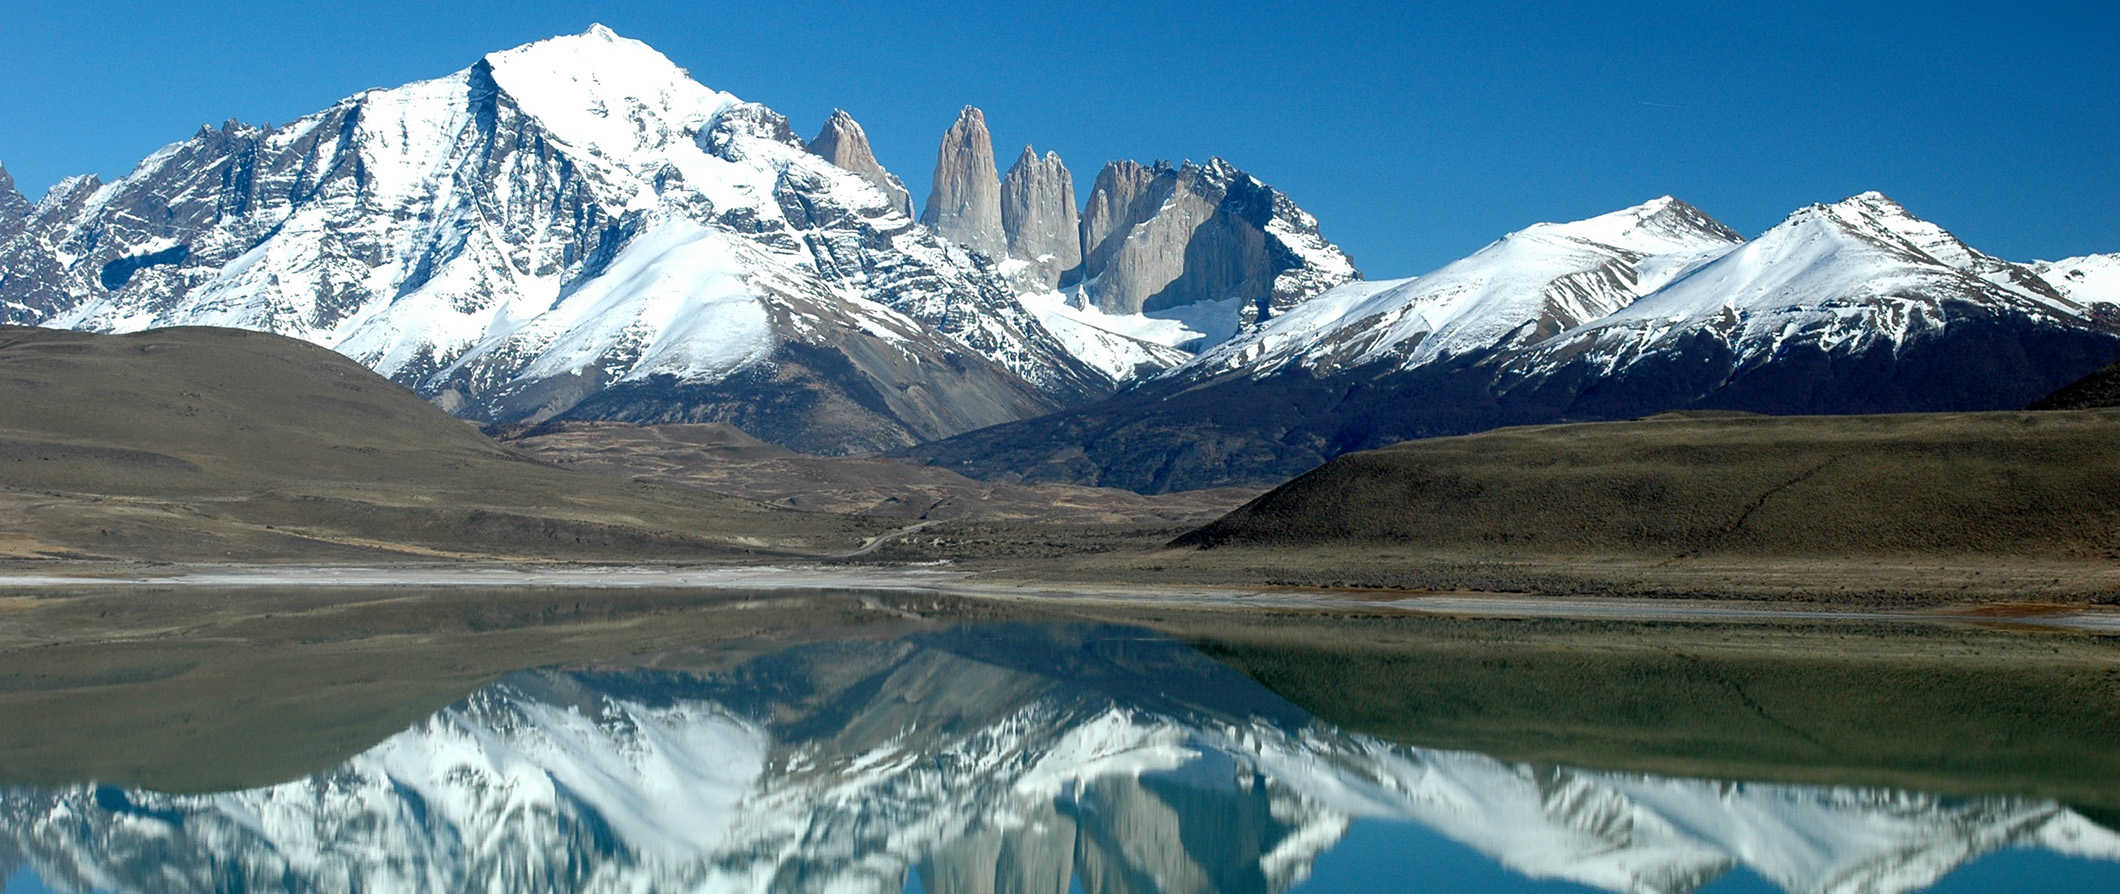 the mountains in Patagonia under a pristine blue sky